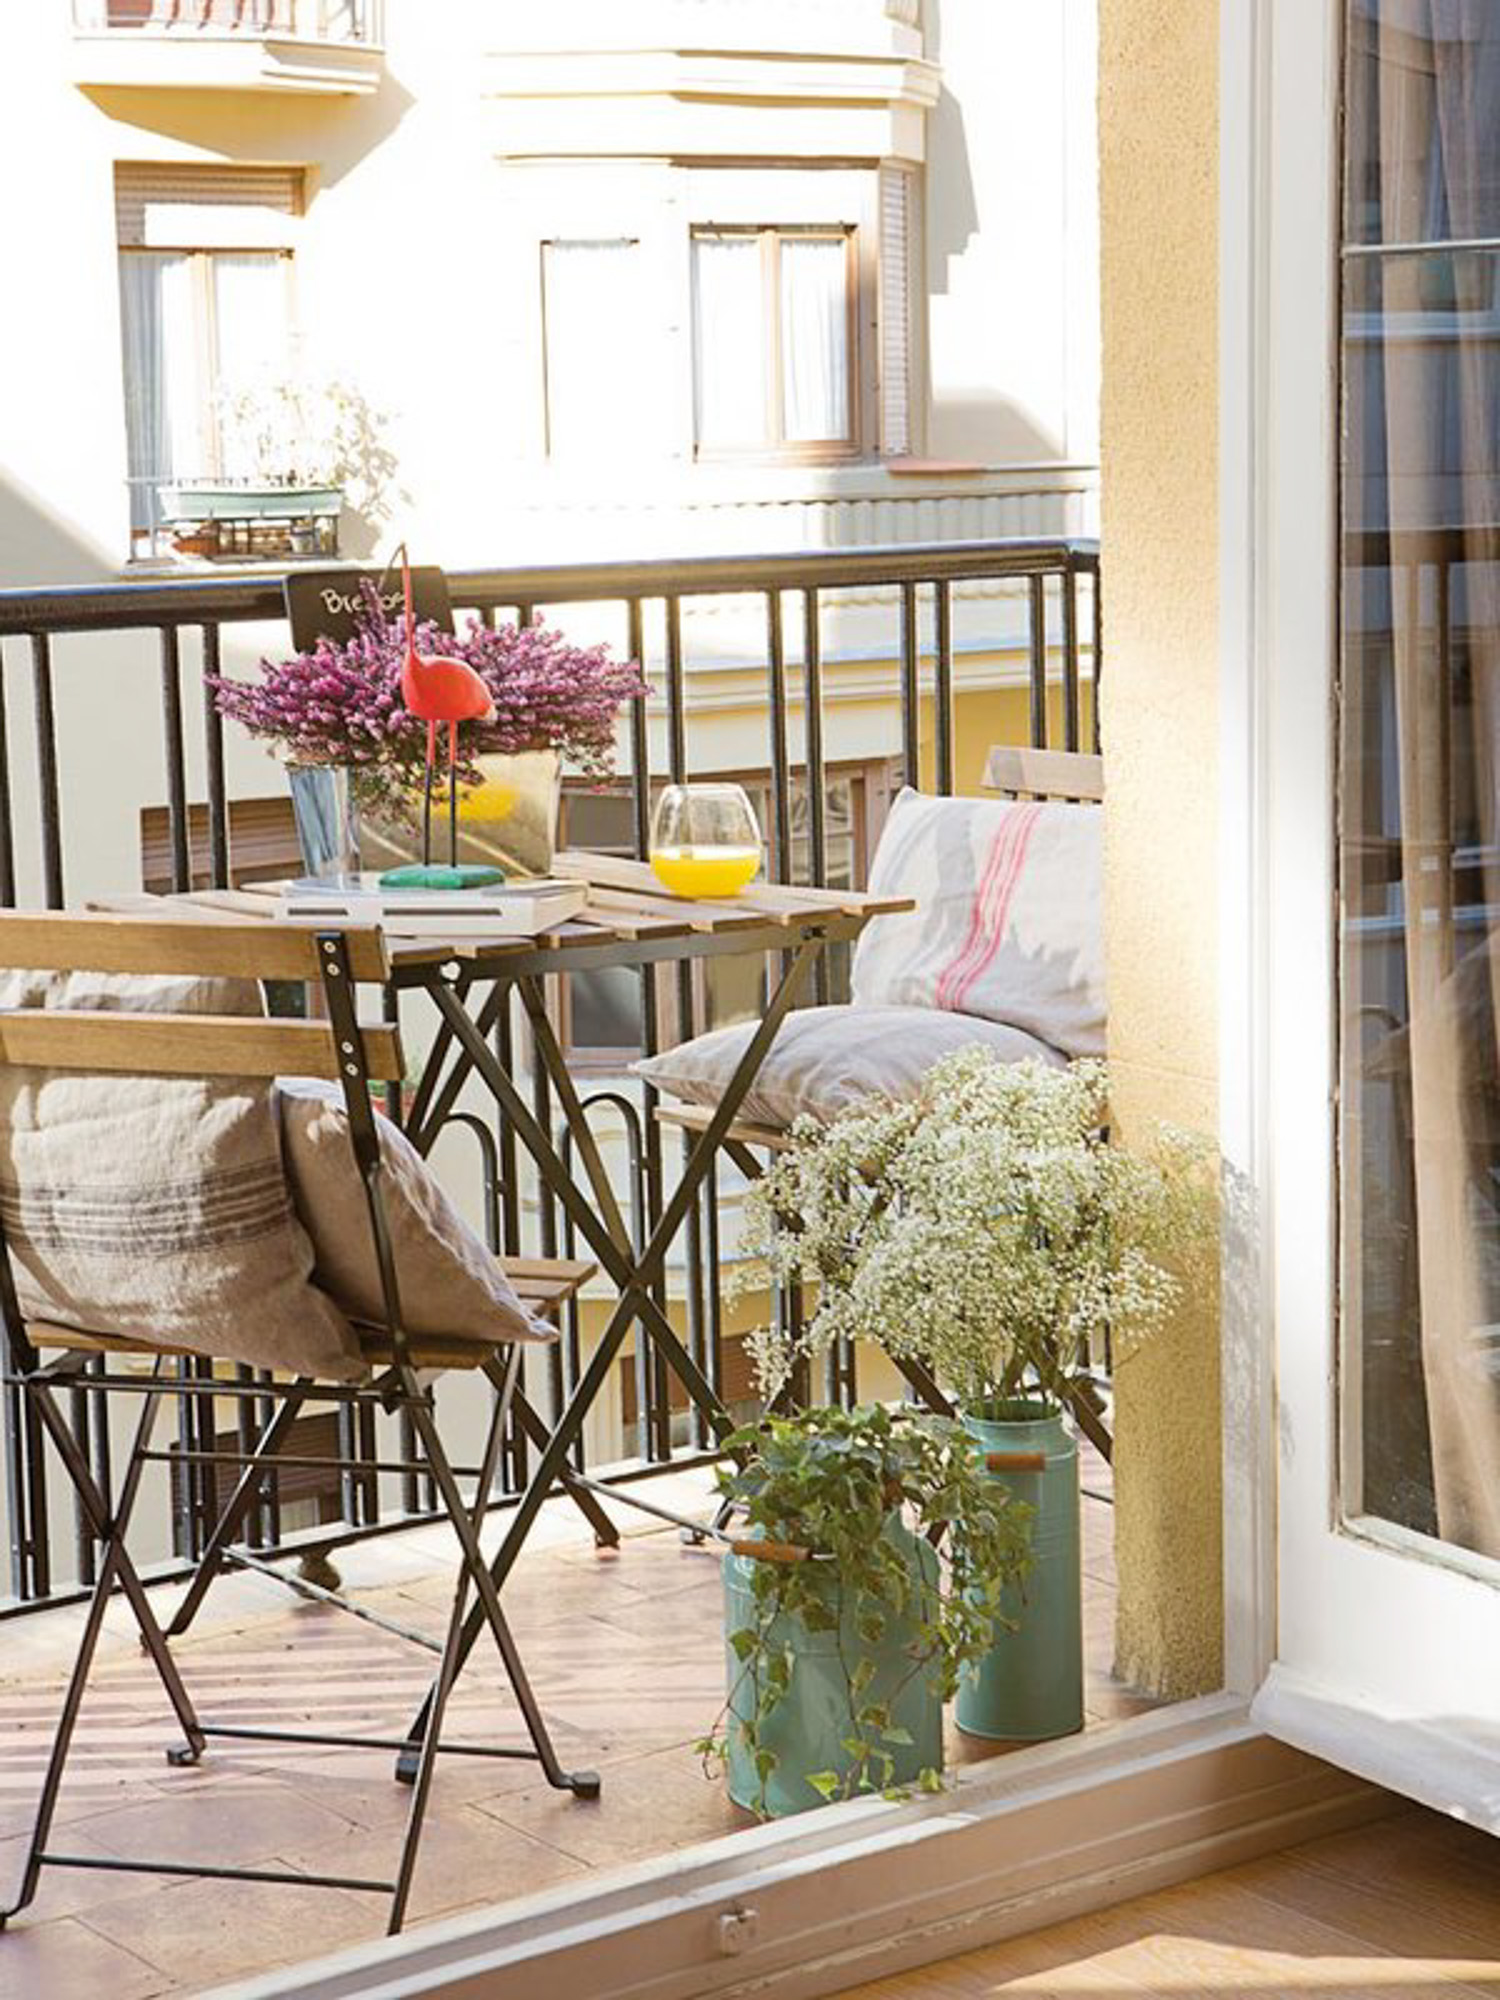 Small Balcony Apartment Rustic: Inspiration For Small Apartment Balconies In The City